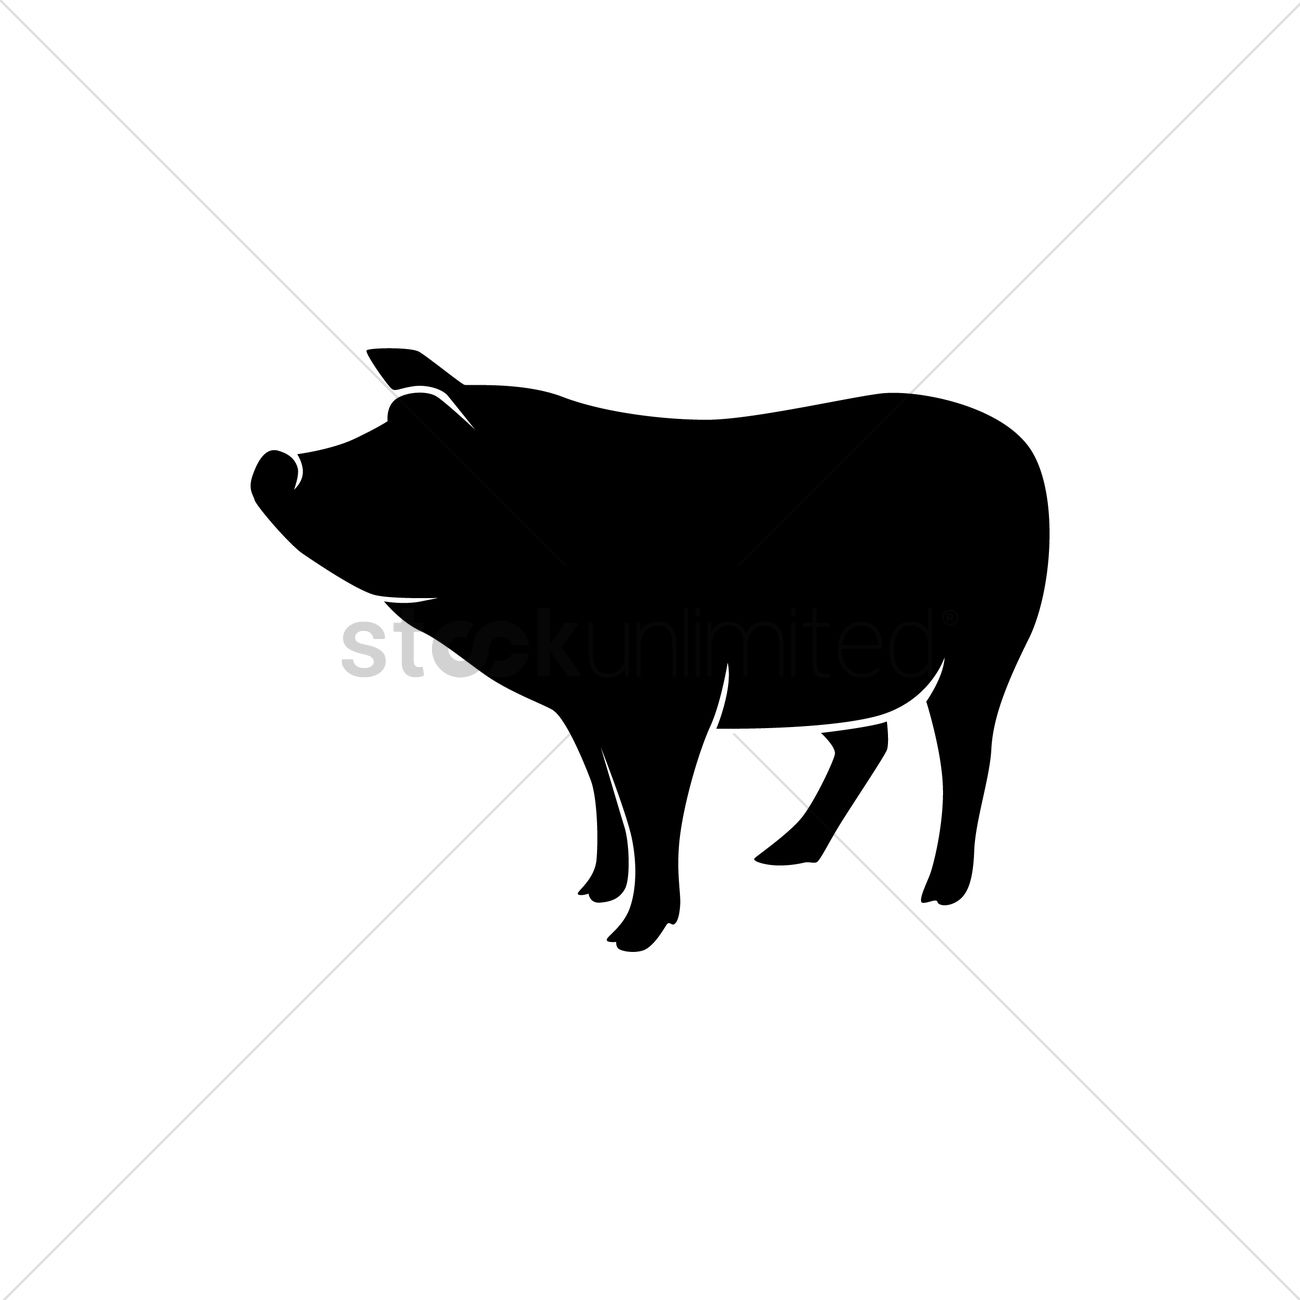 1300x1300 Silhouette Of A Pig Vector Image